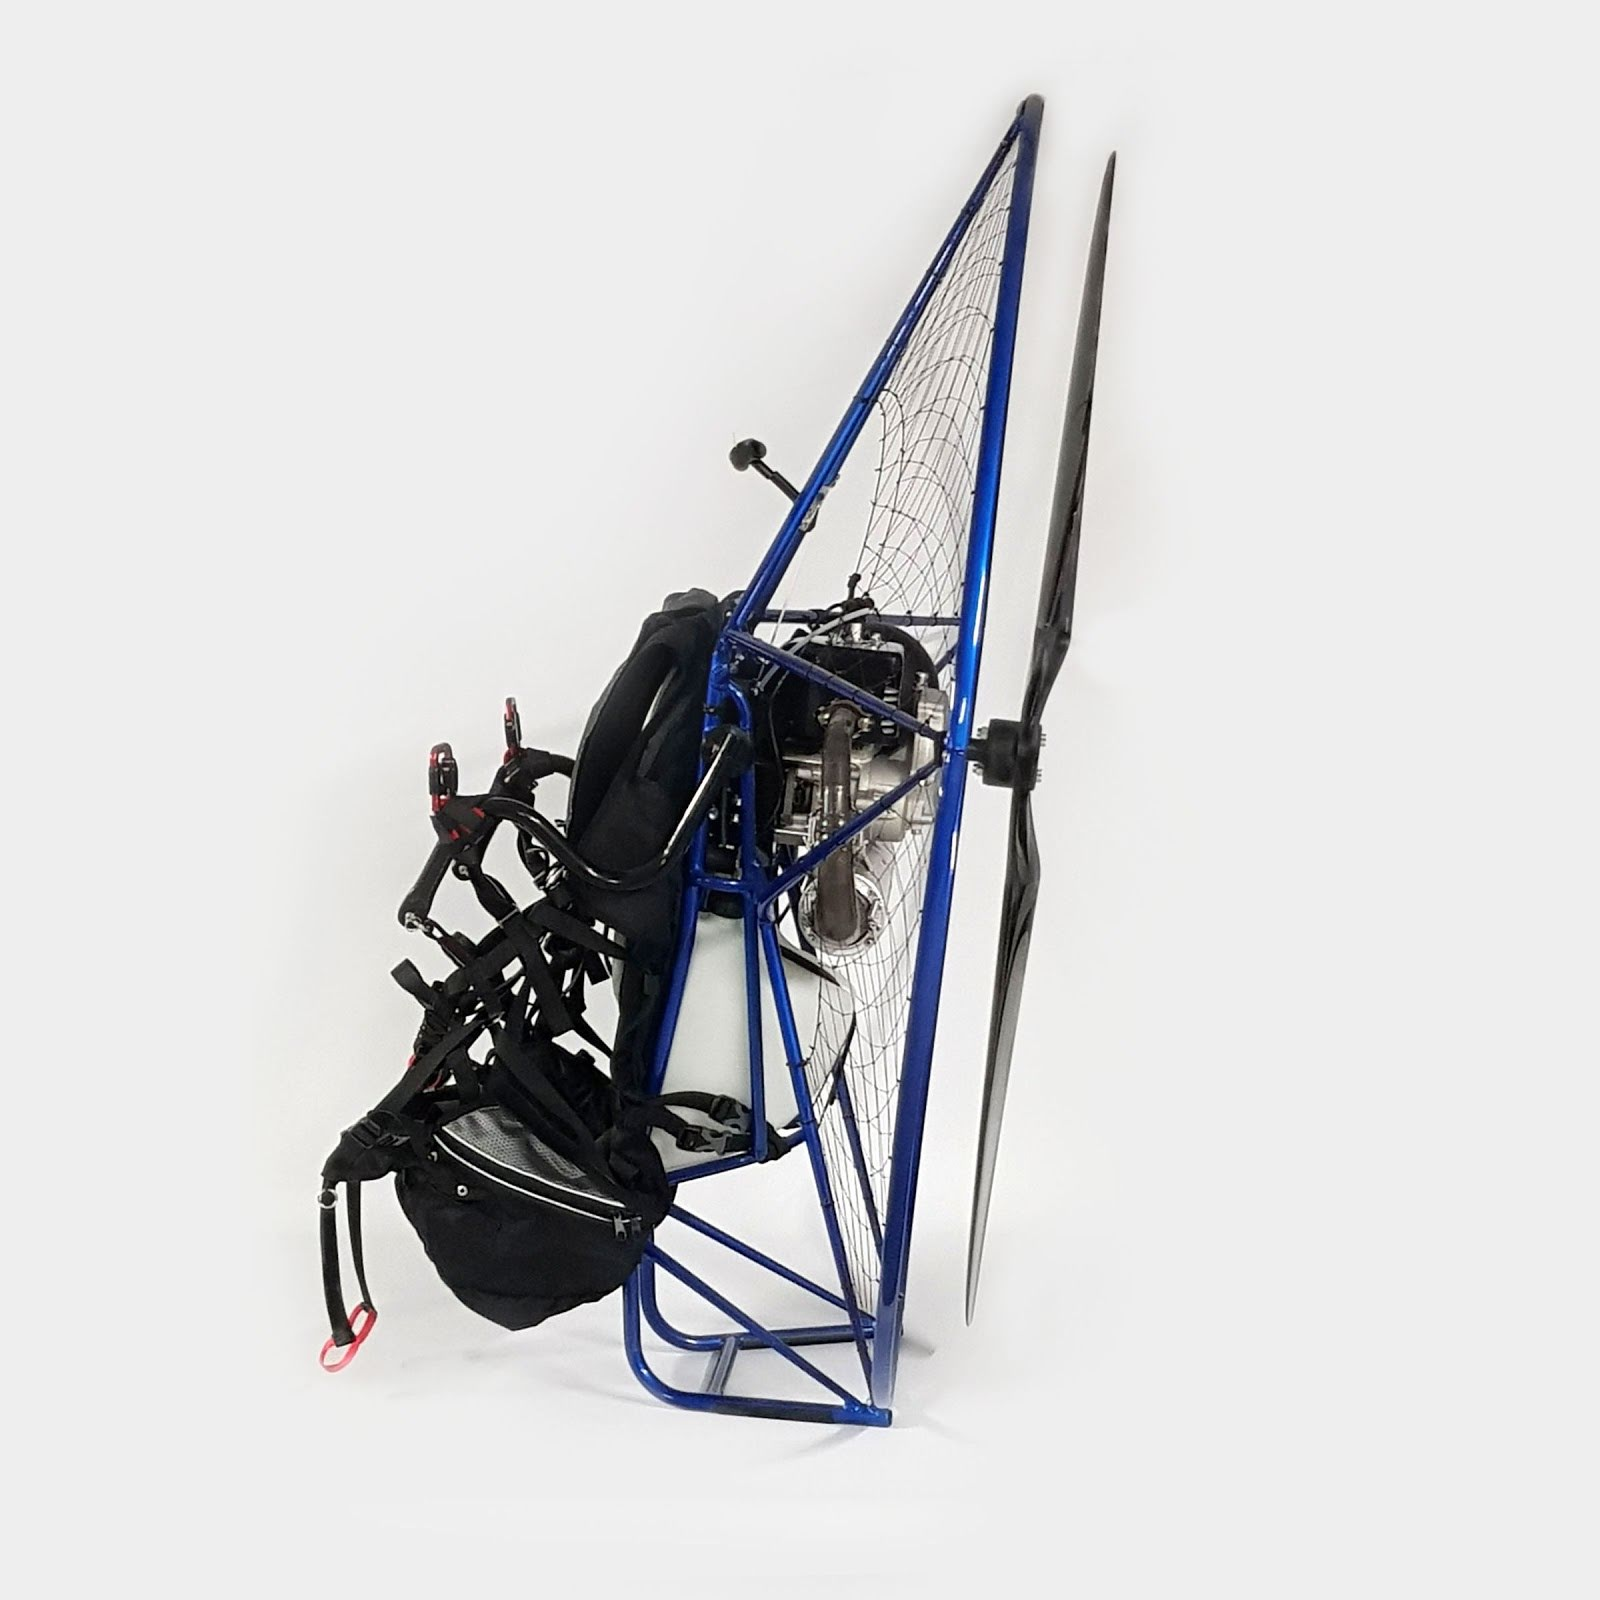 New light Rigid cage for popular Top 80 paramotor